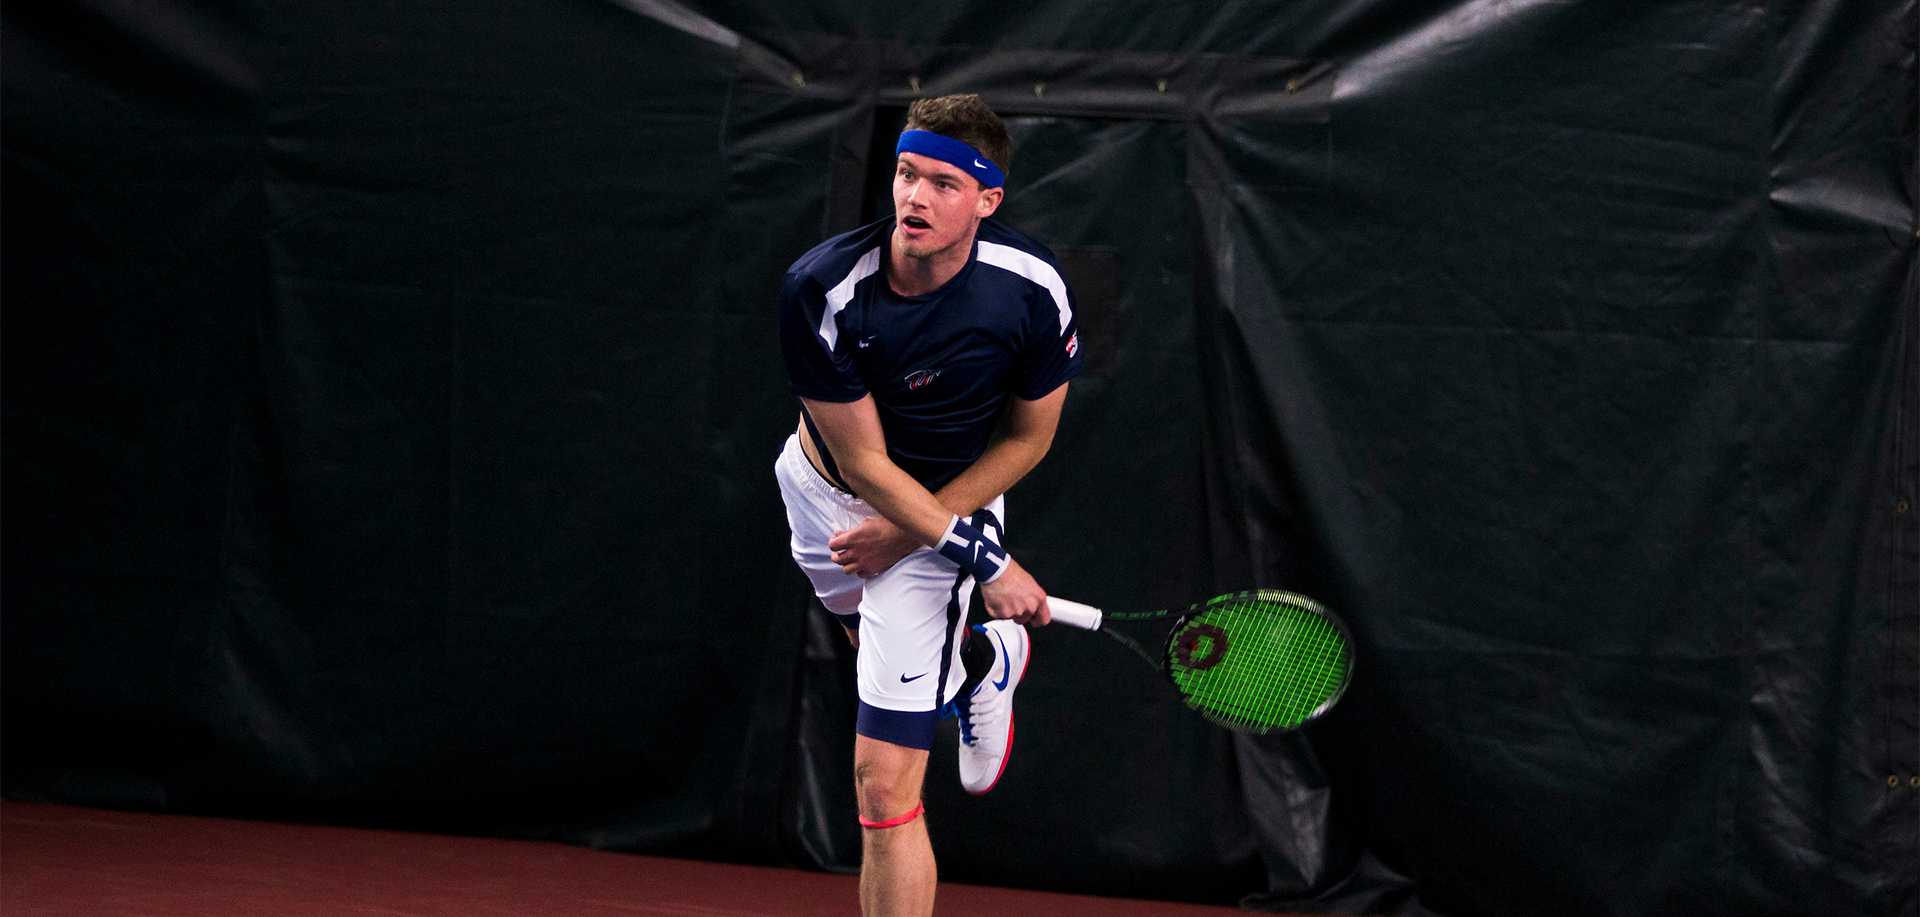 Liberty showed promise in both singles and doubles at the Elon Fall Invitational this weekend.